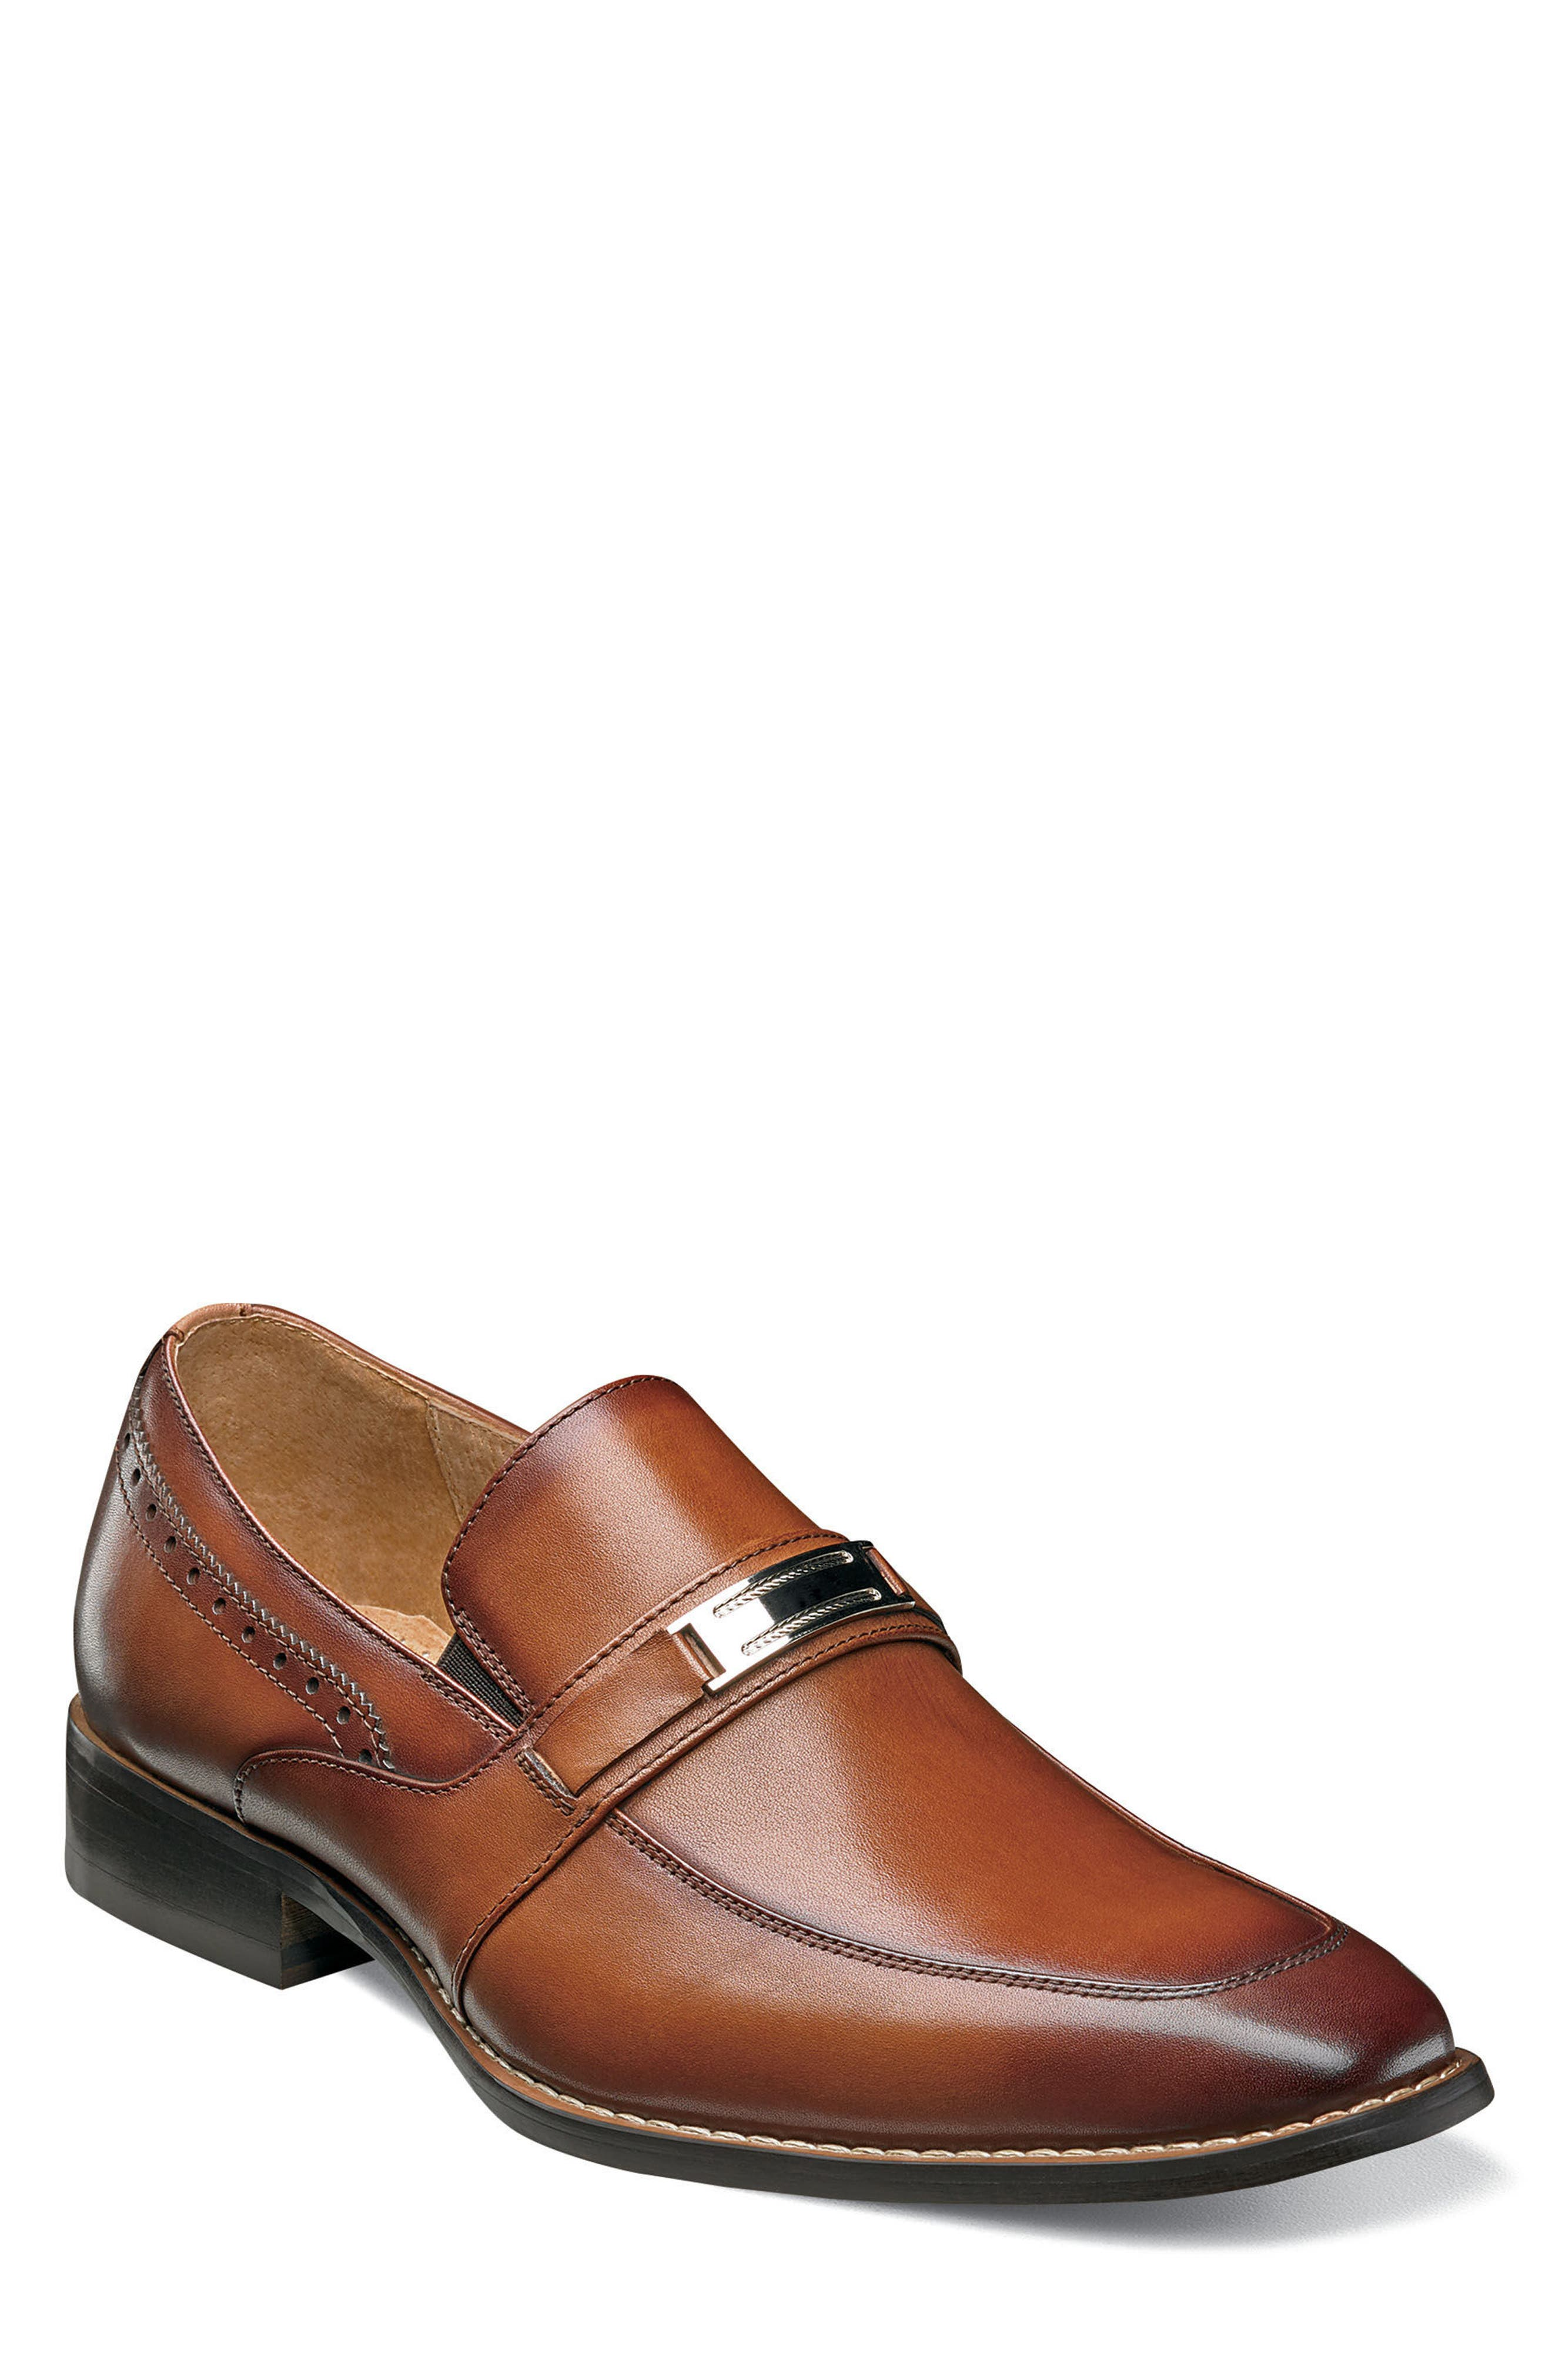 STACY ADAMS Shaw Bit Loafer, Main, color, 201